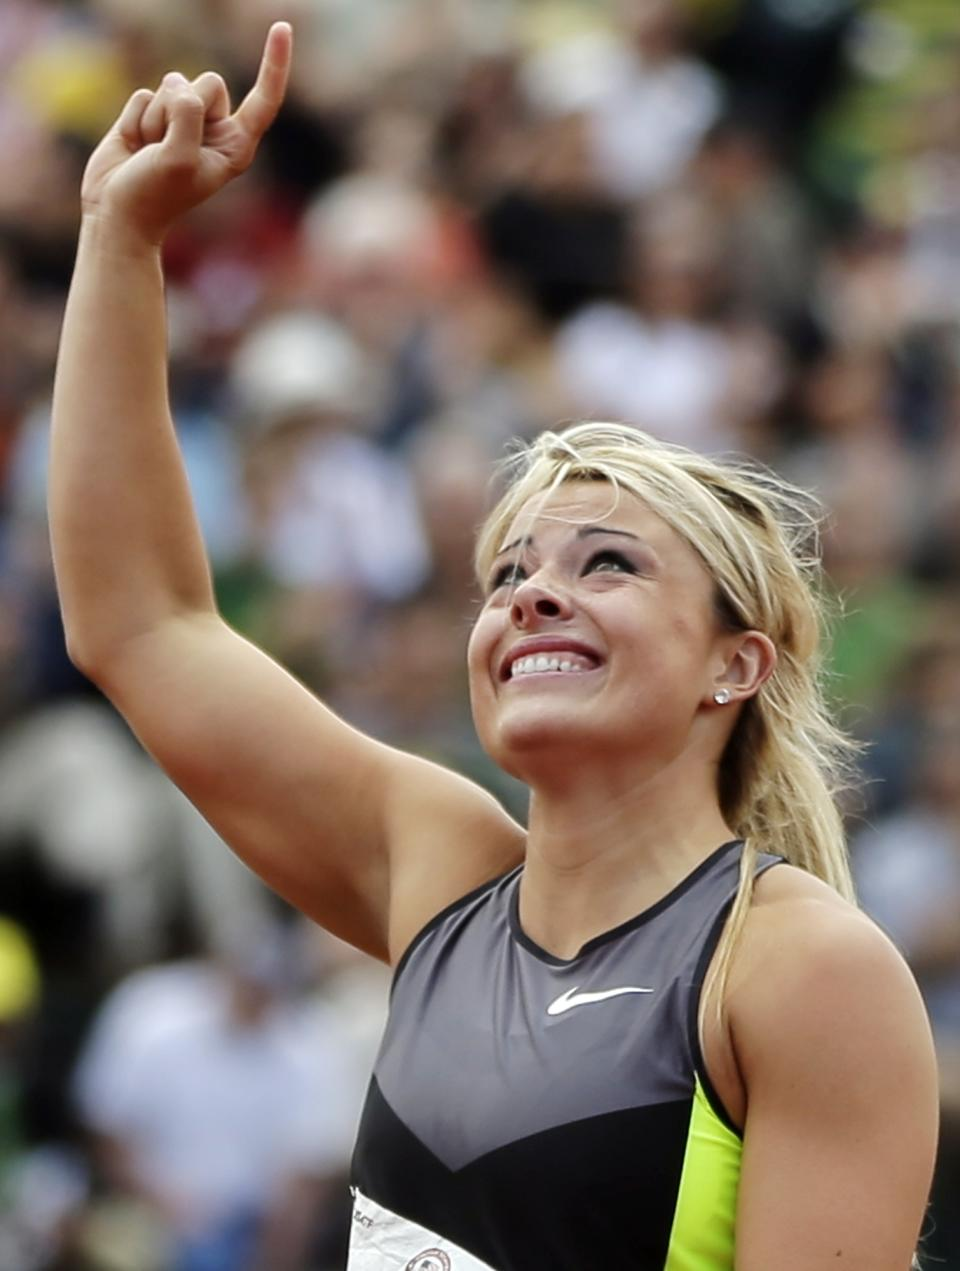 Brittany Borman celebrates making the Olympic team after competing in the women's javelin final at the U.S. Olympic Track and Field Trials Sunday, July 1, 2012, in Eugene, Ore. (AP Photo/Matt Slocum)